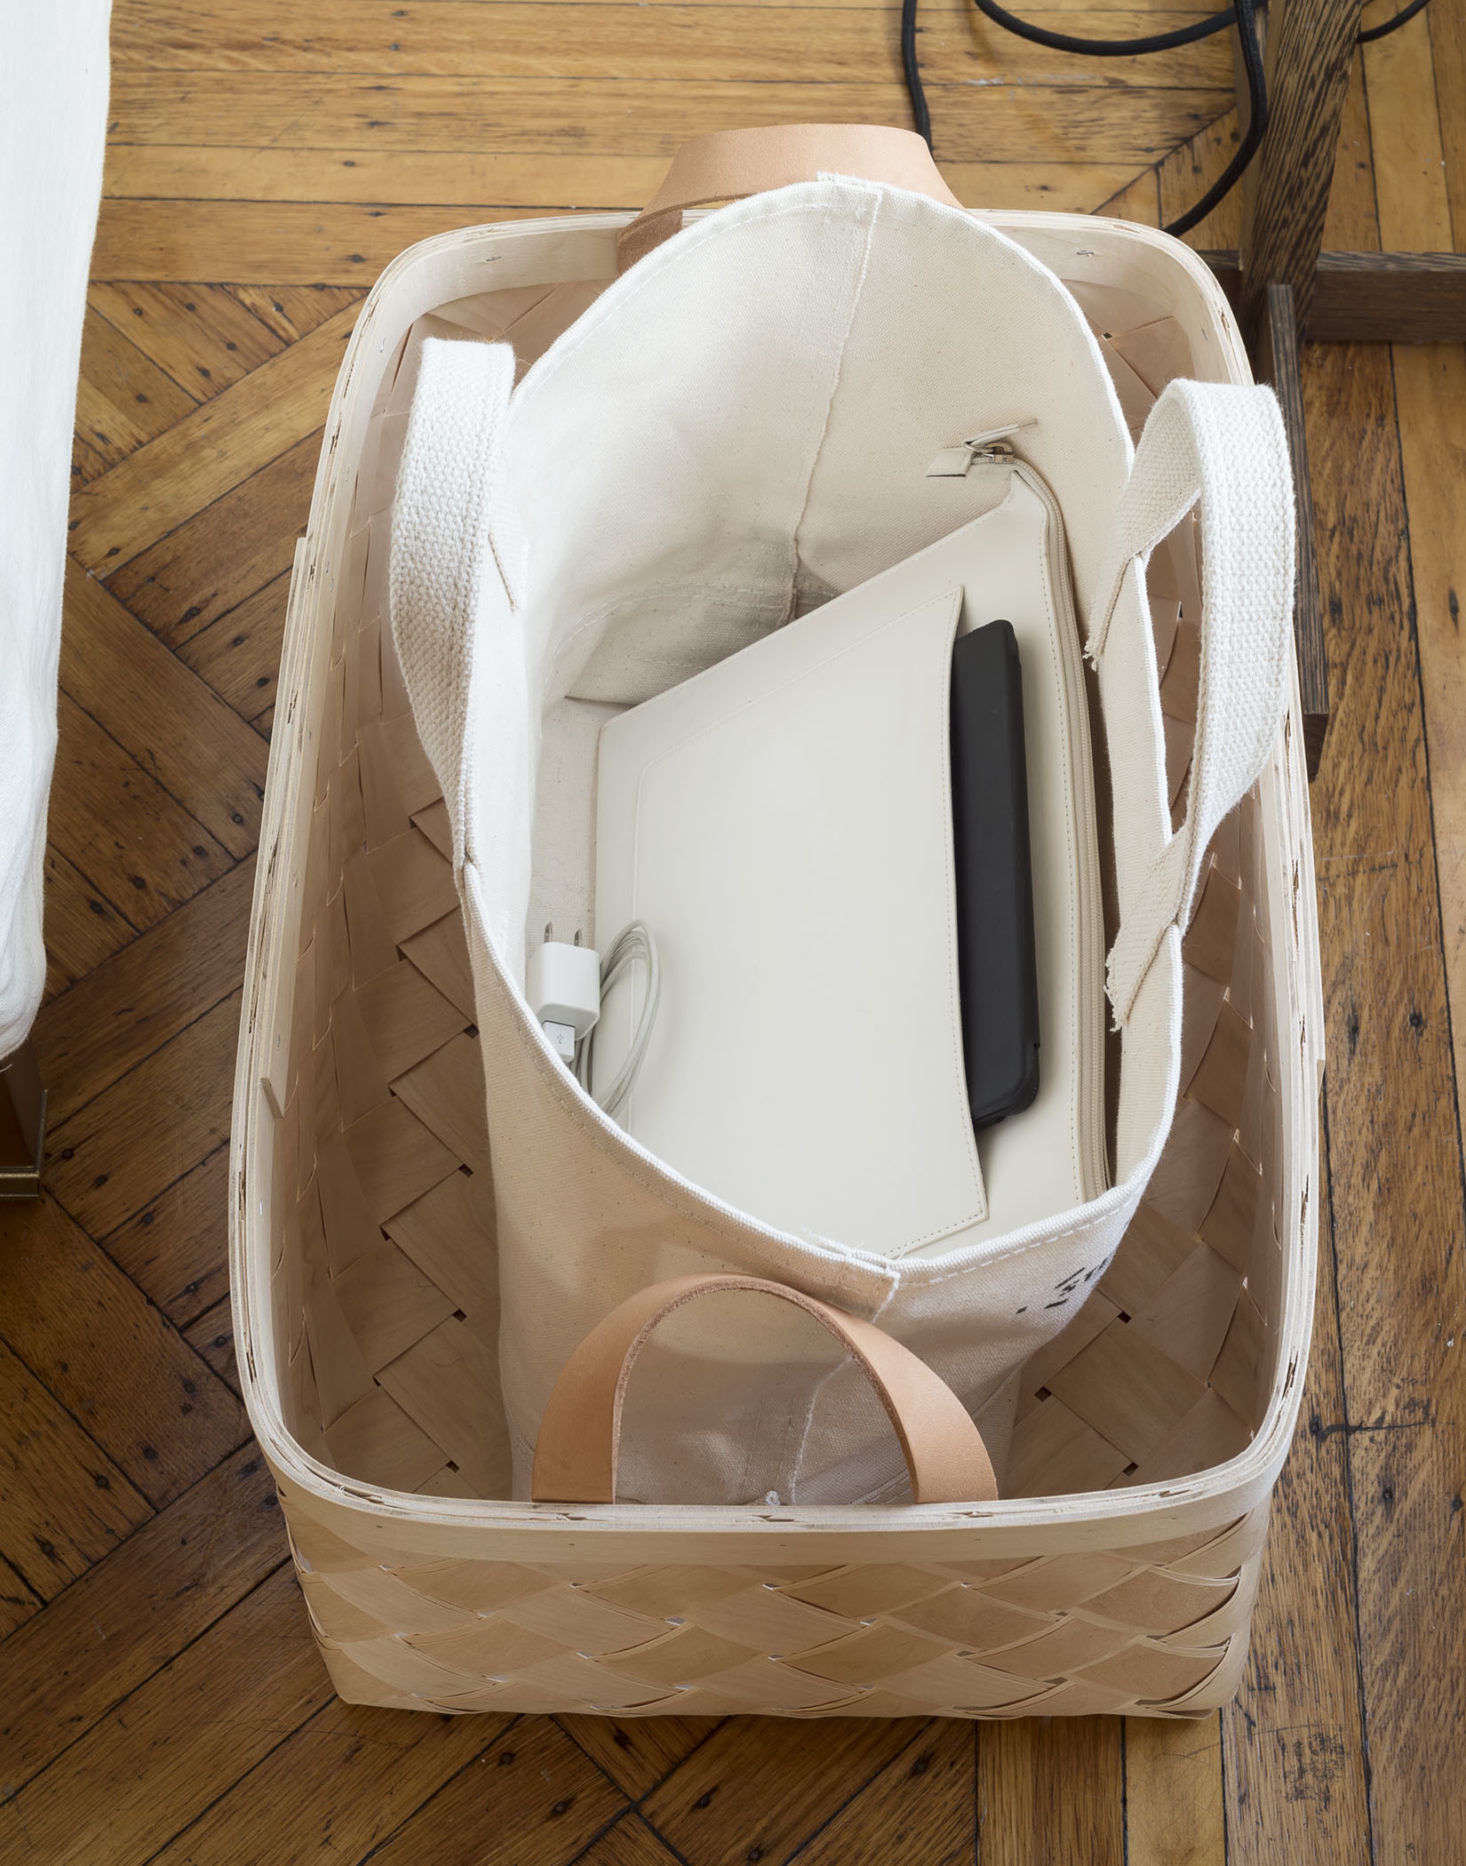 An idea from The Organized Home book: an office in a bag. Slip your laptop and papers into a bag (we like a stand-up canvas version like this, but any will do); chargers can go into smaller bags inside. Tote it all to your at-home workspace in the morning, then pack it away when it&#8